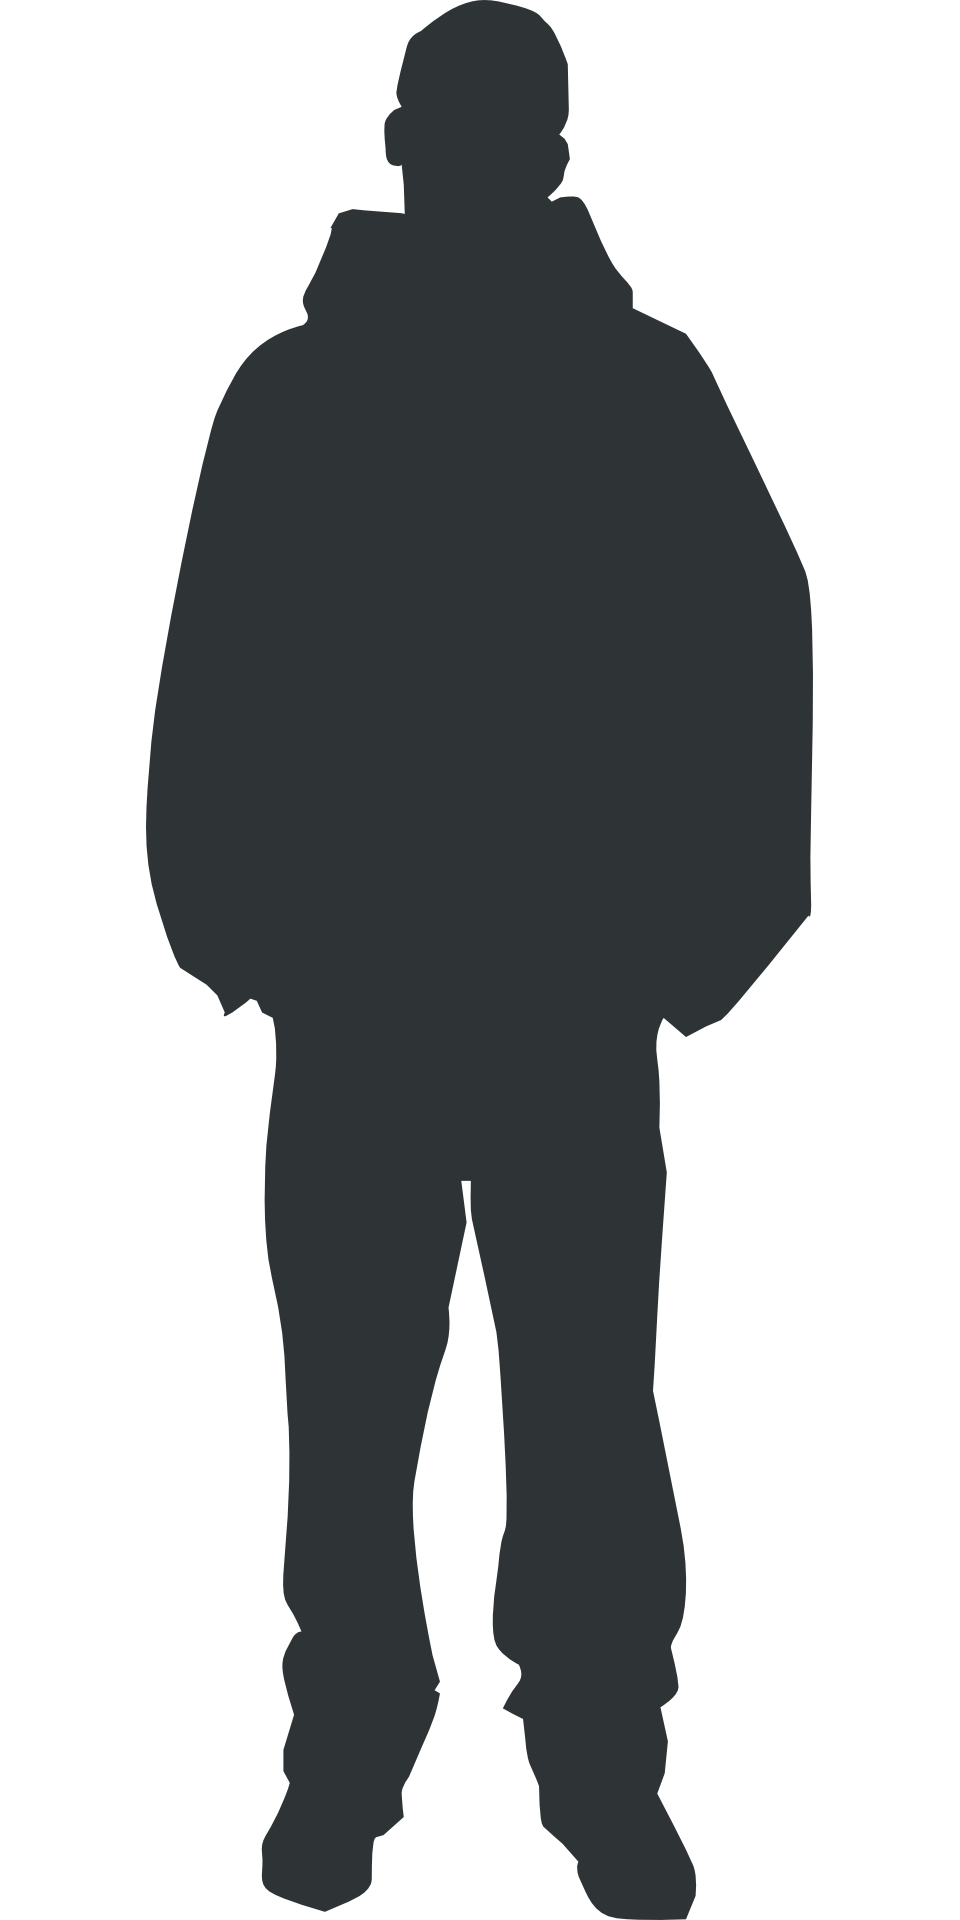 Clipart People Silhouette